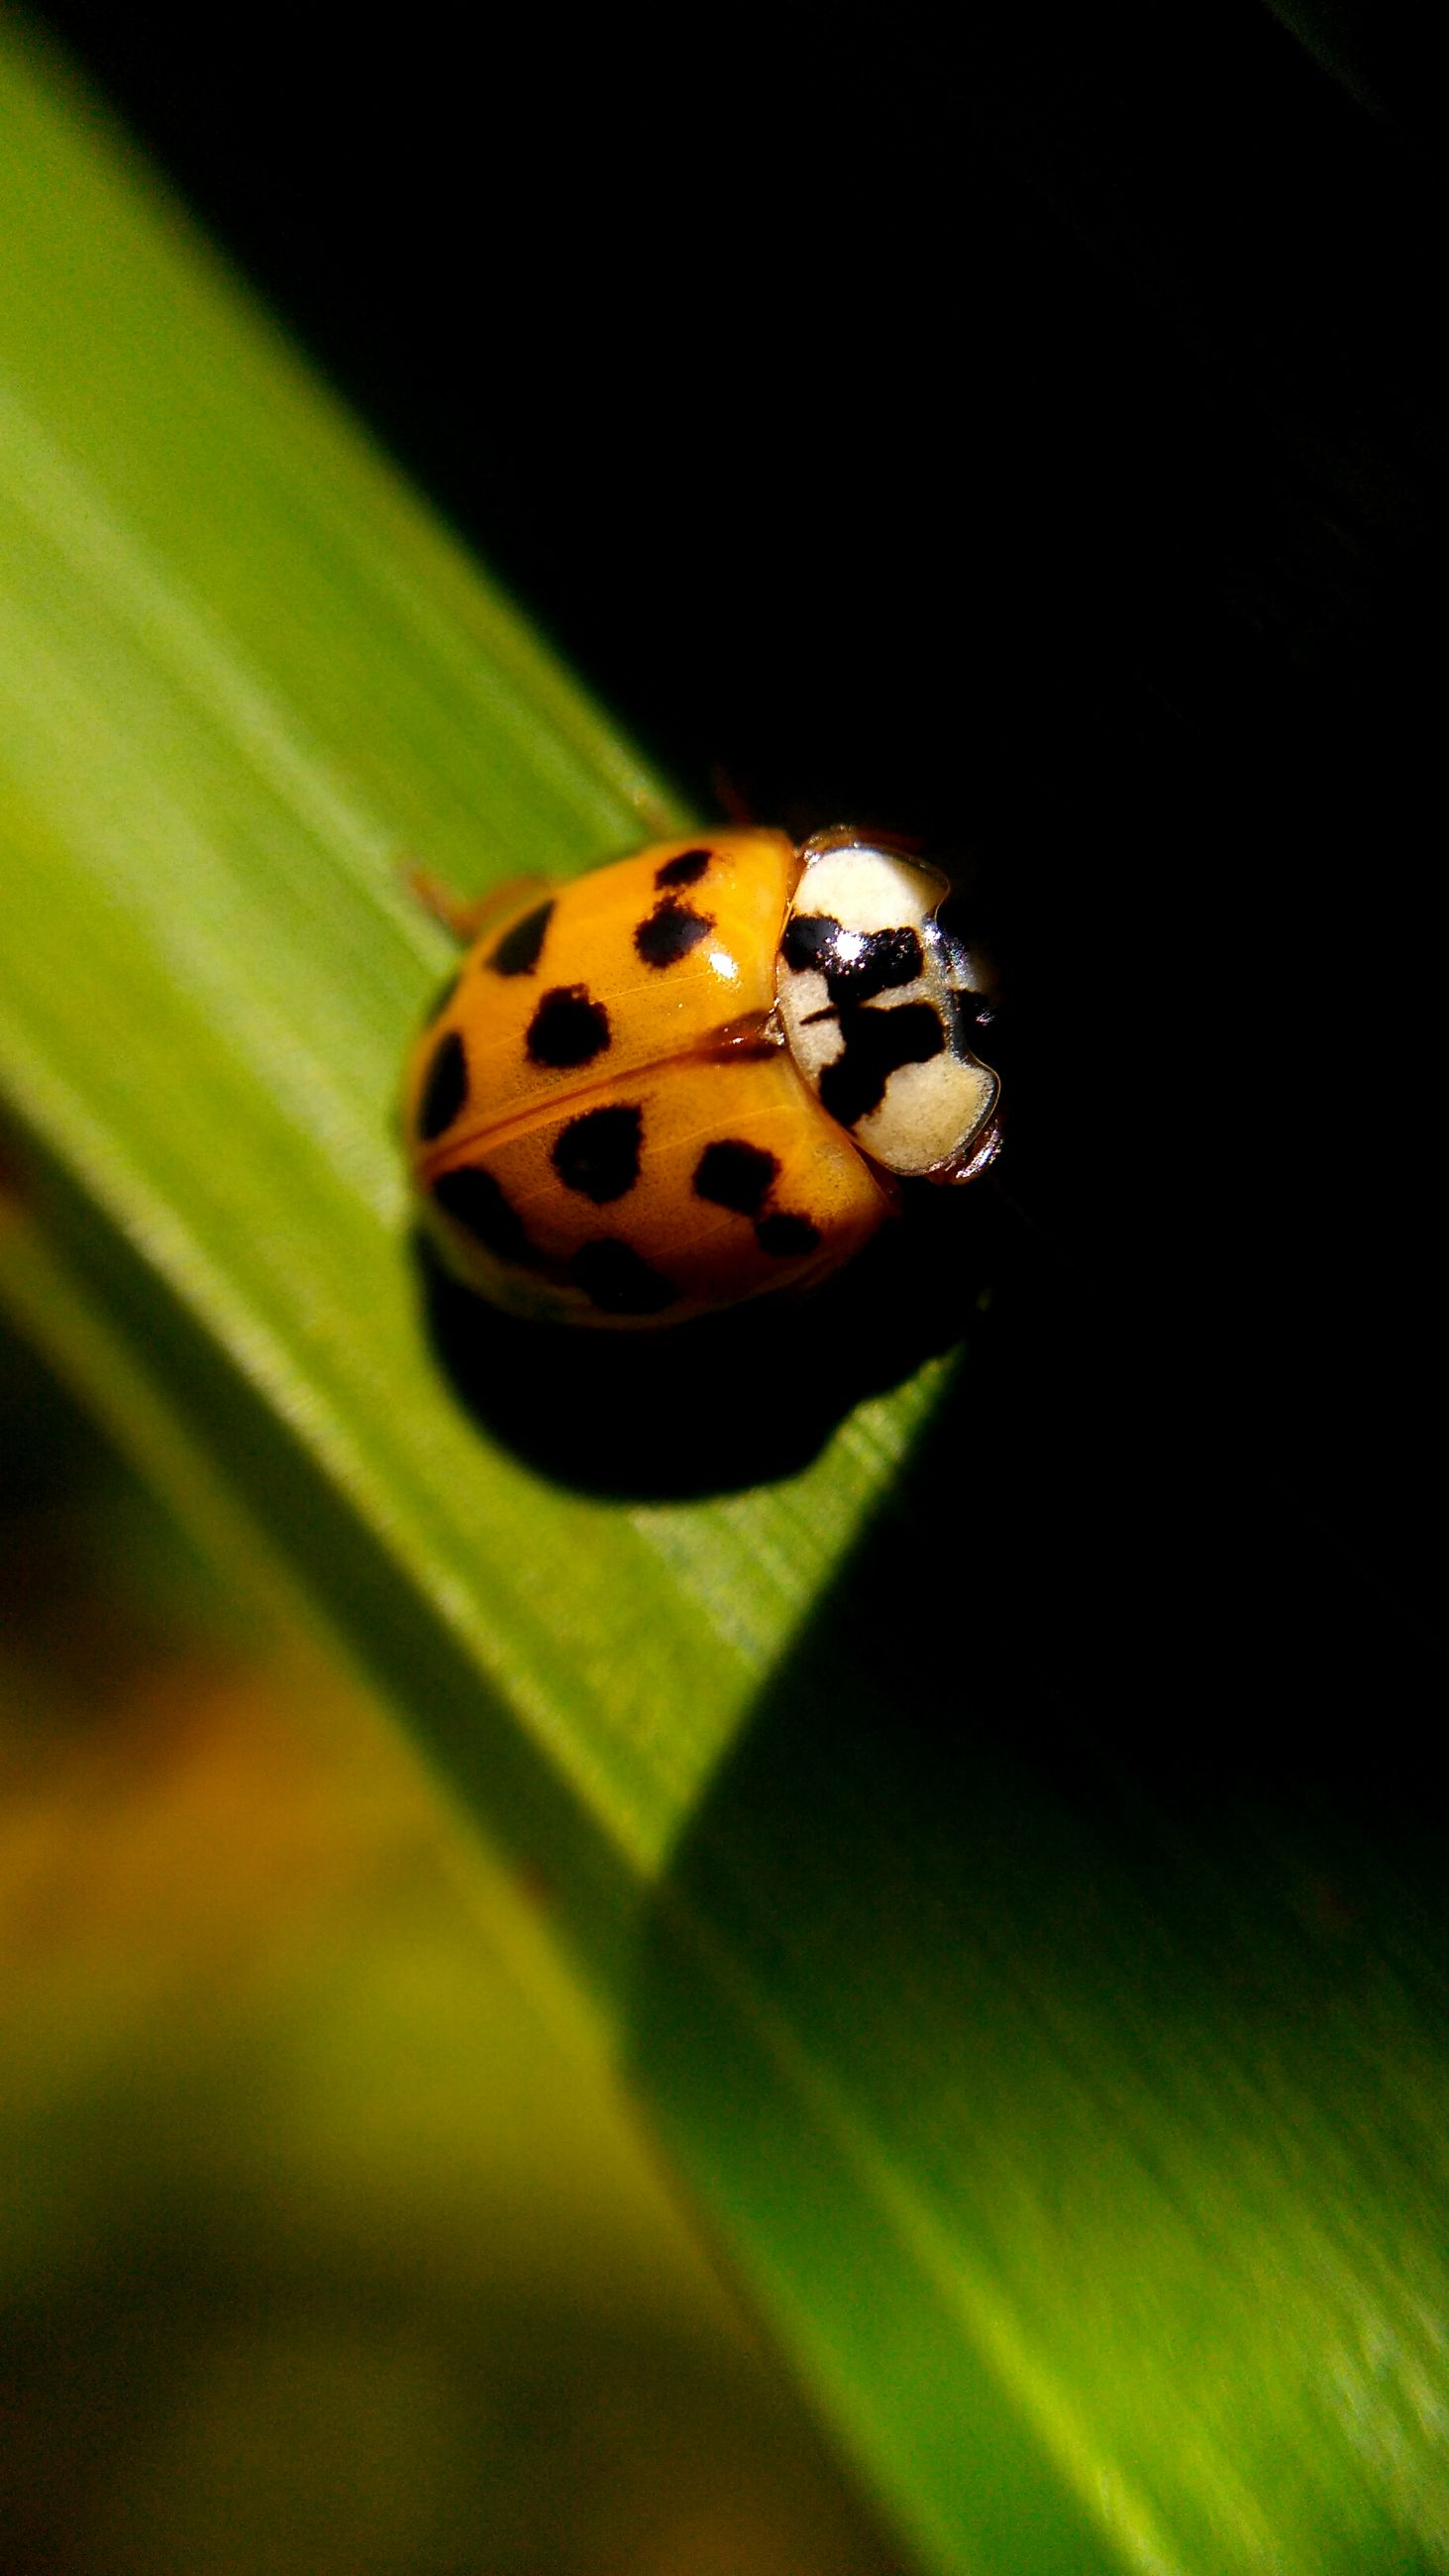 insect, animal themes, ladybug, animals in the wild, spotted, one animal, close-up, no people, nature, fragility, tiny, day, outdoors